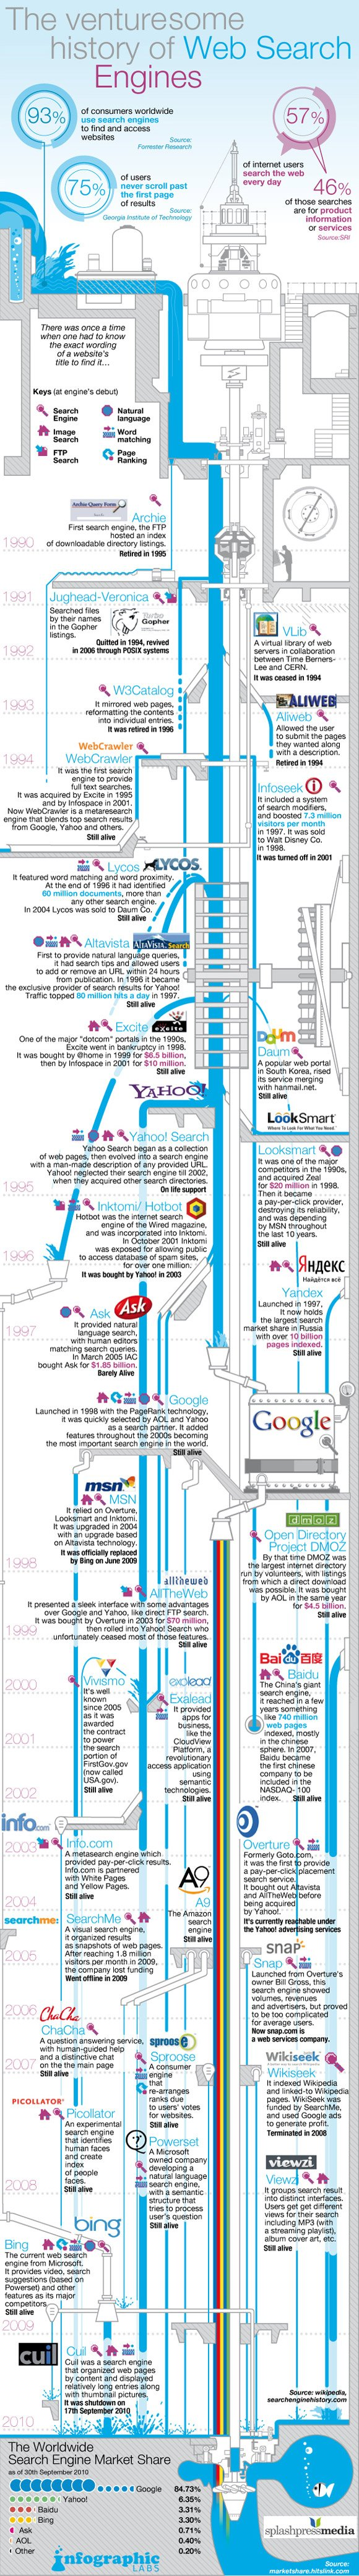 Search Engine History [Infographic]